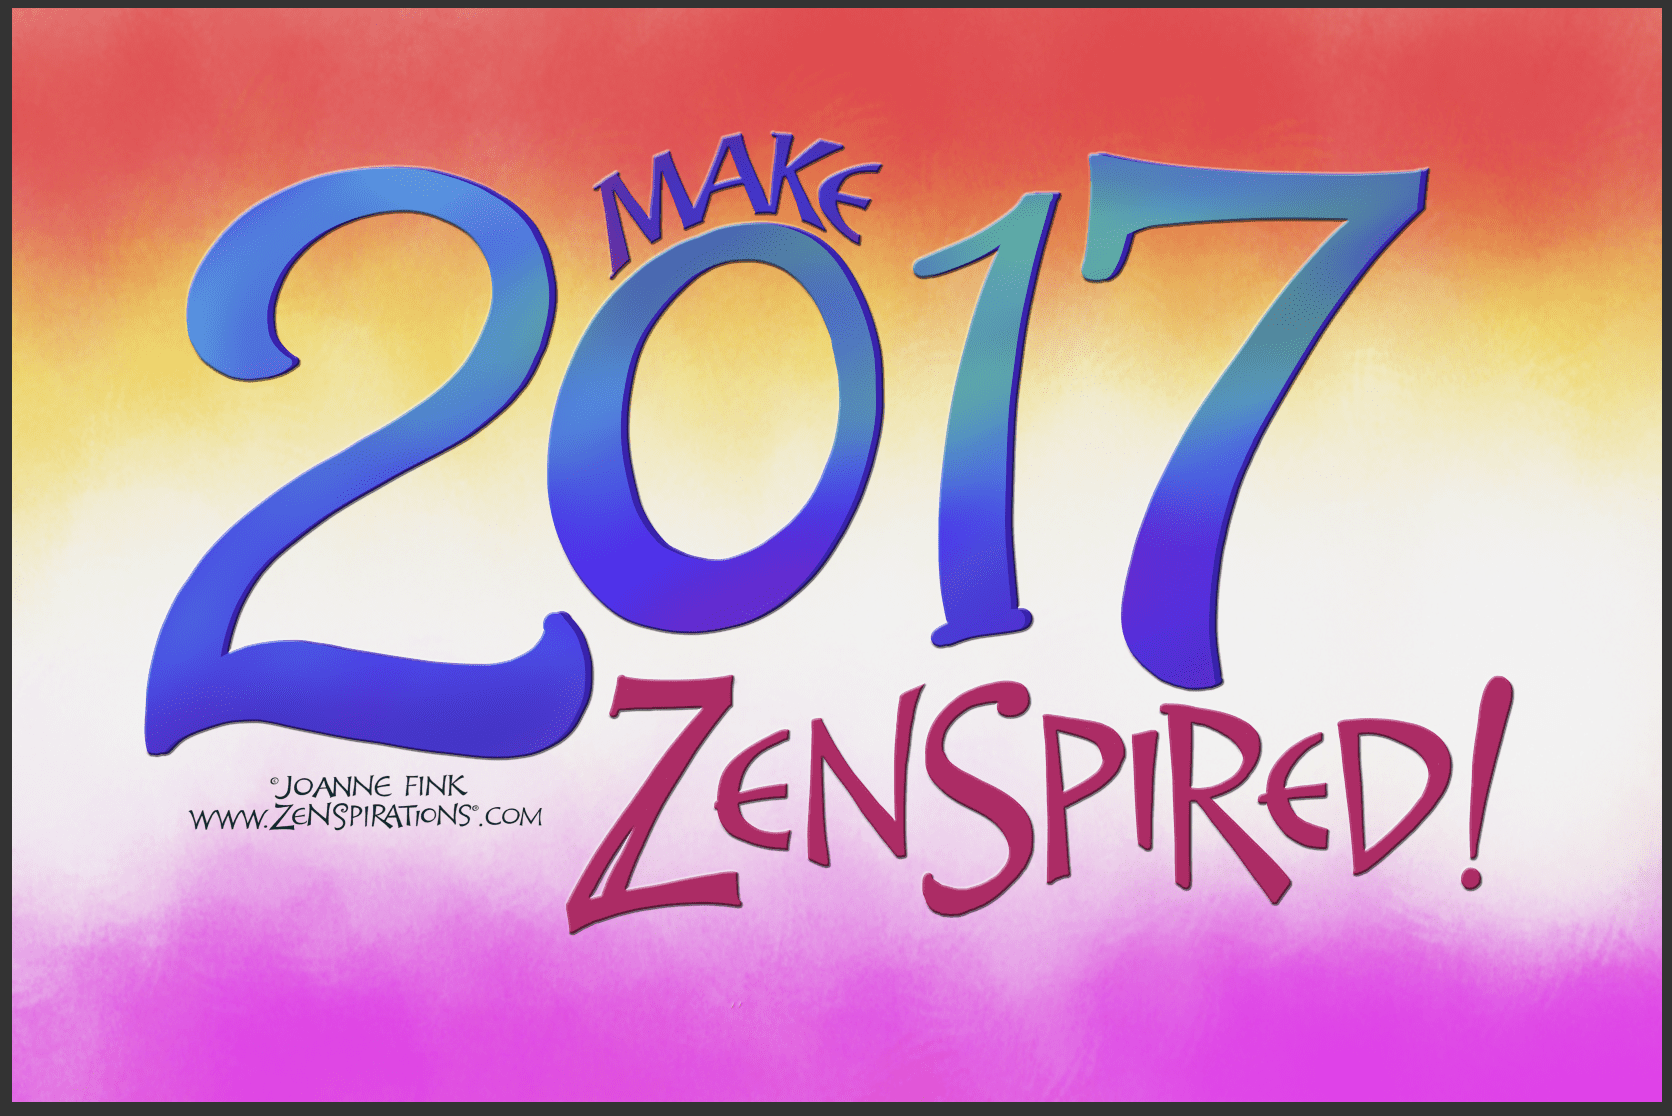 zenspirations_by_joanne_fink_new_year_blog_2016_zenspired